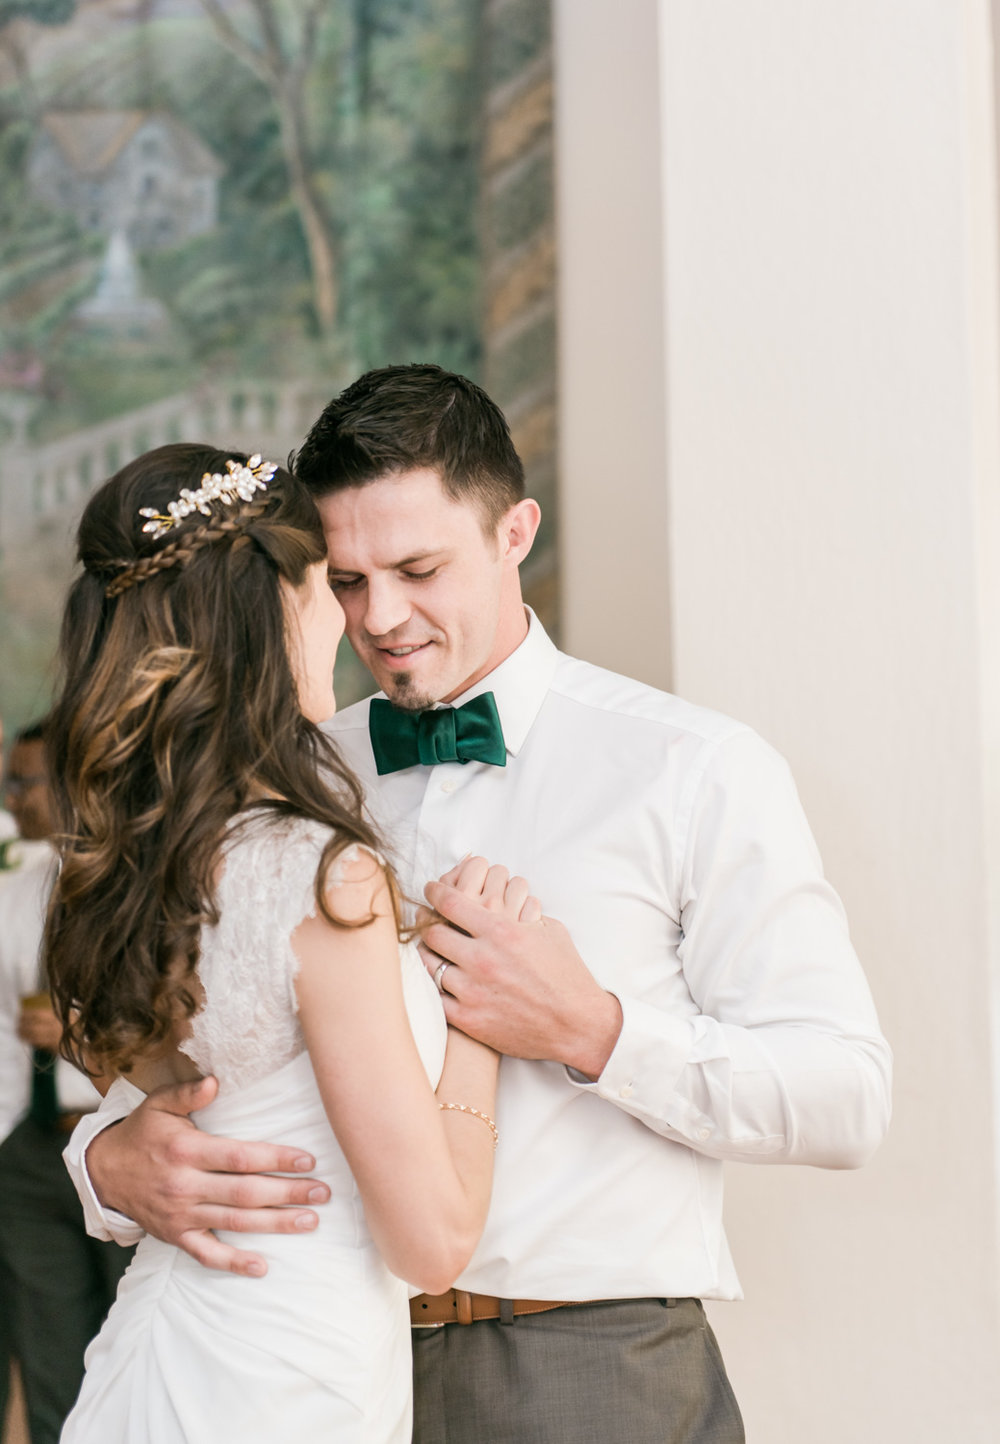 first-dance-bride-groom-wedding-photography-must-have-photo